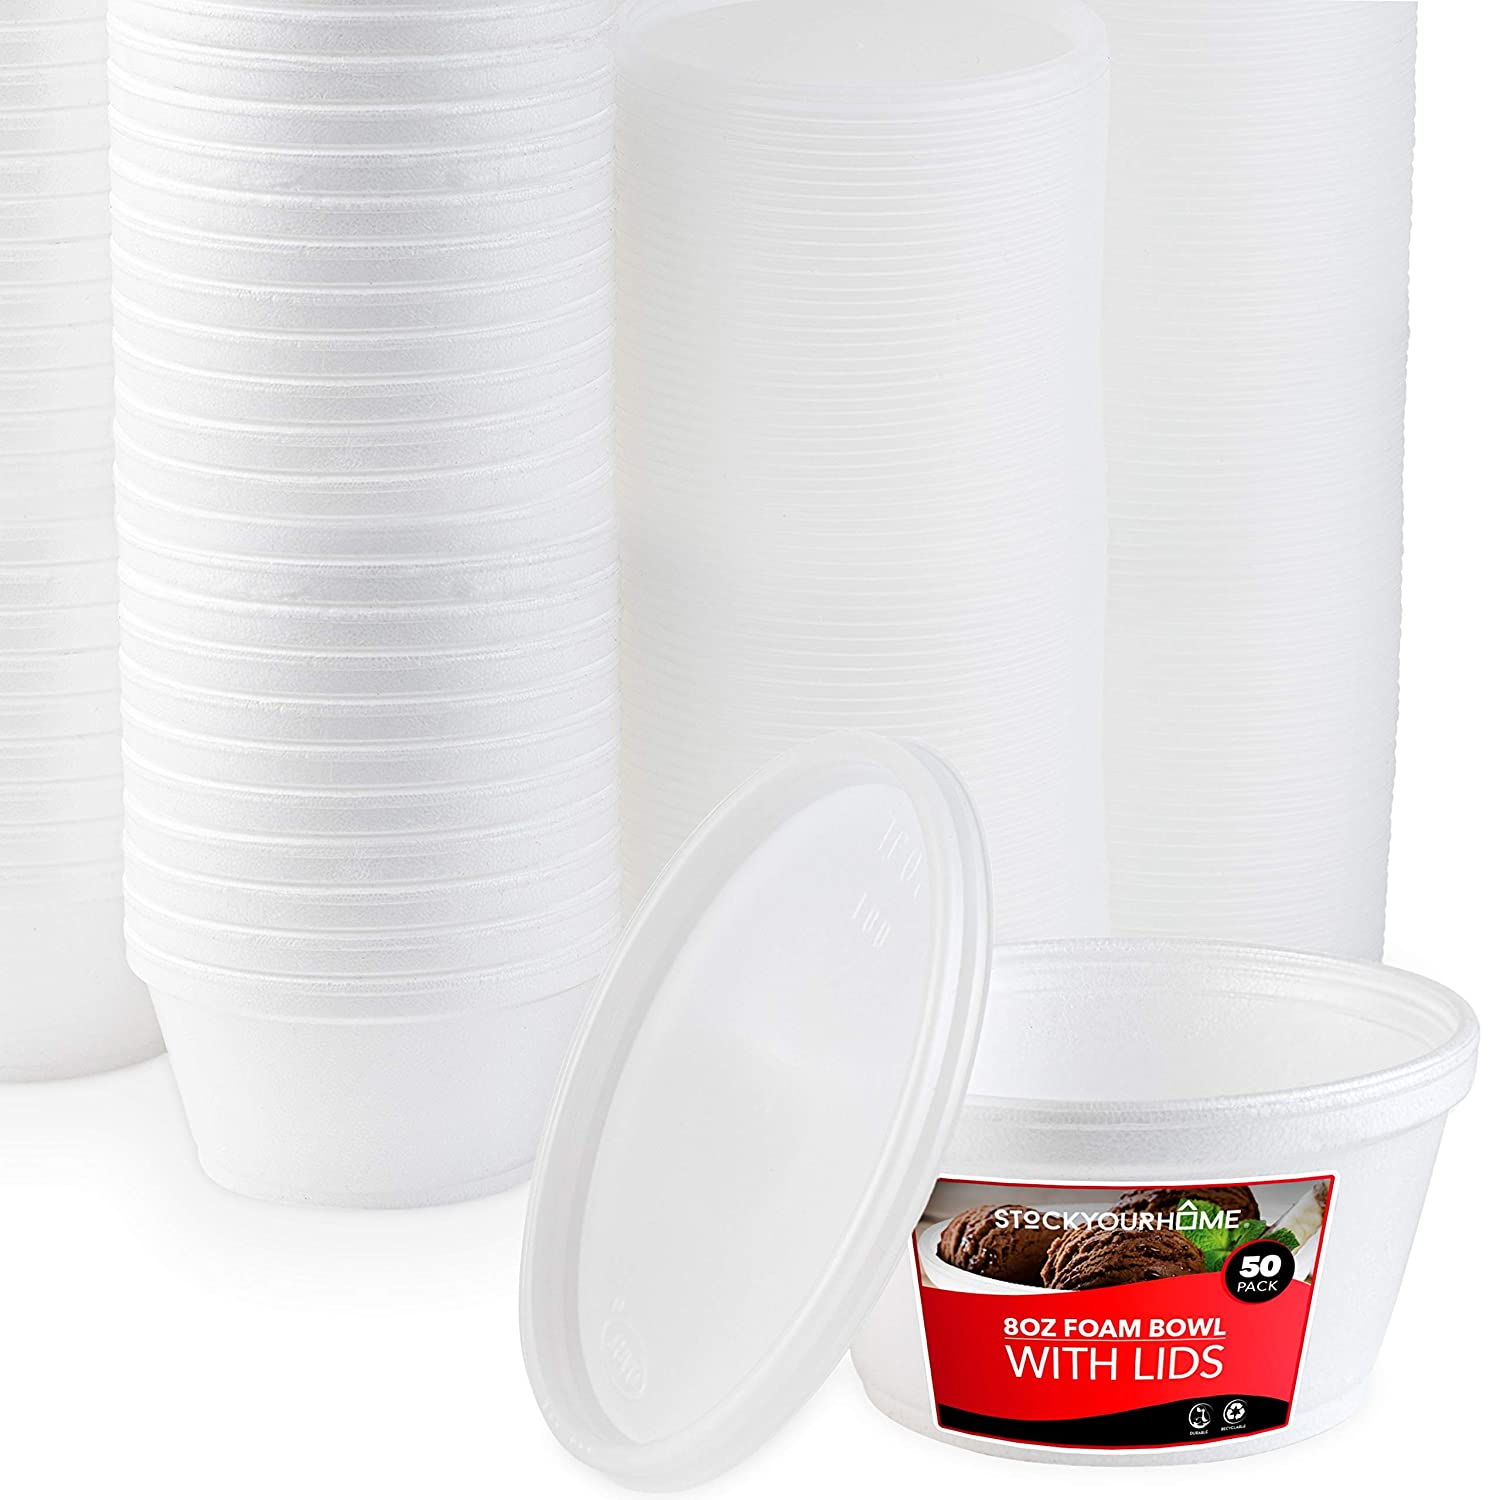 Stock Your Home 8 Ounce Foam Bowls with Lids (50 Count) - Styrofoam Bowls with Lids - Insulated to Go Foam Cups - to Go Containers for Soup, Oatmeal, Ice Cream, Delis, Cafes, Restaurants